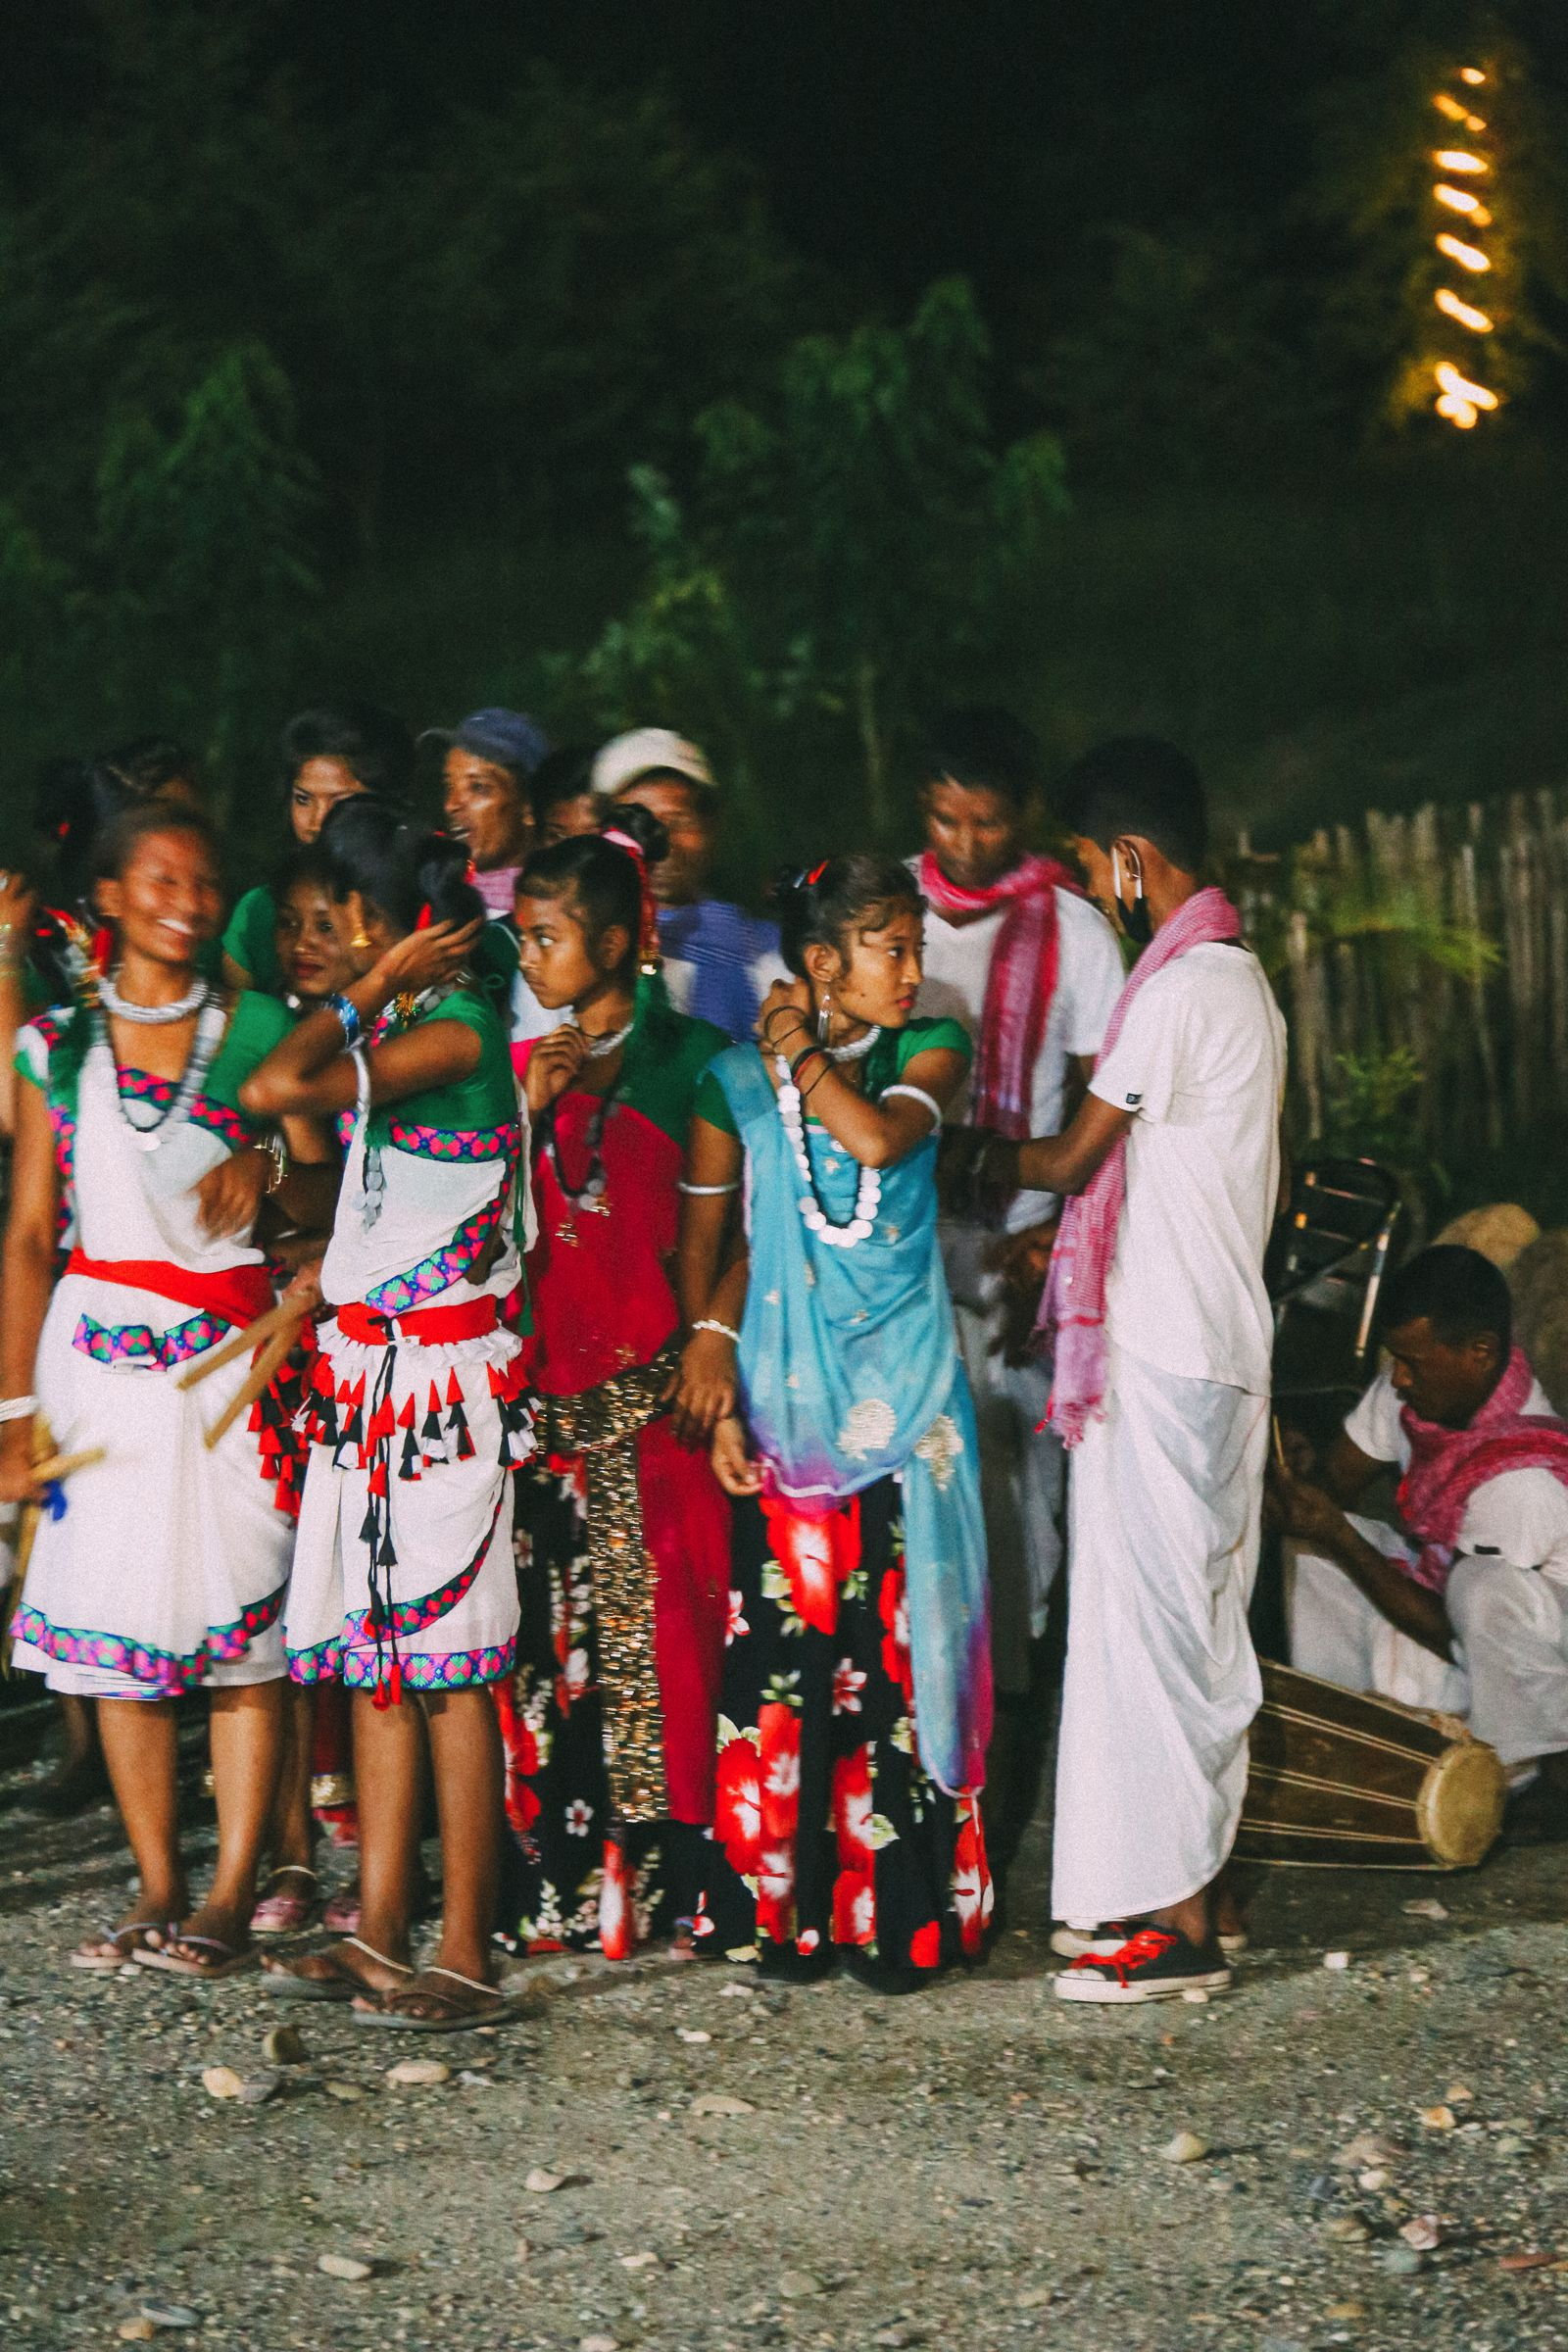 The Sights, Sounds And People Of Chitwan, Nepal (52)